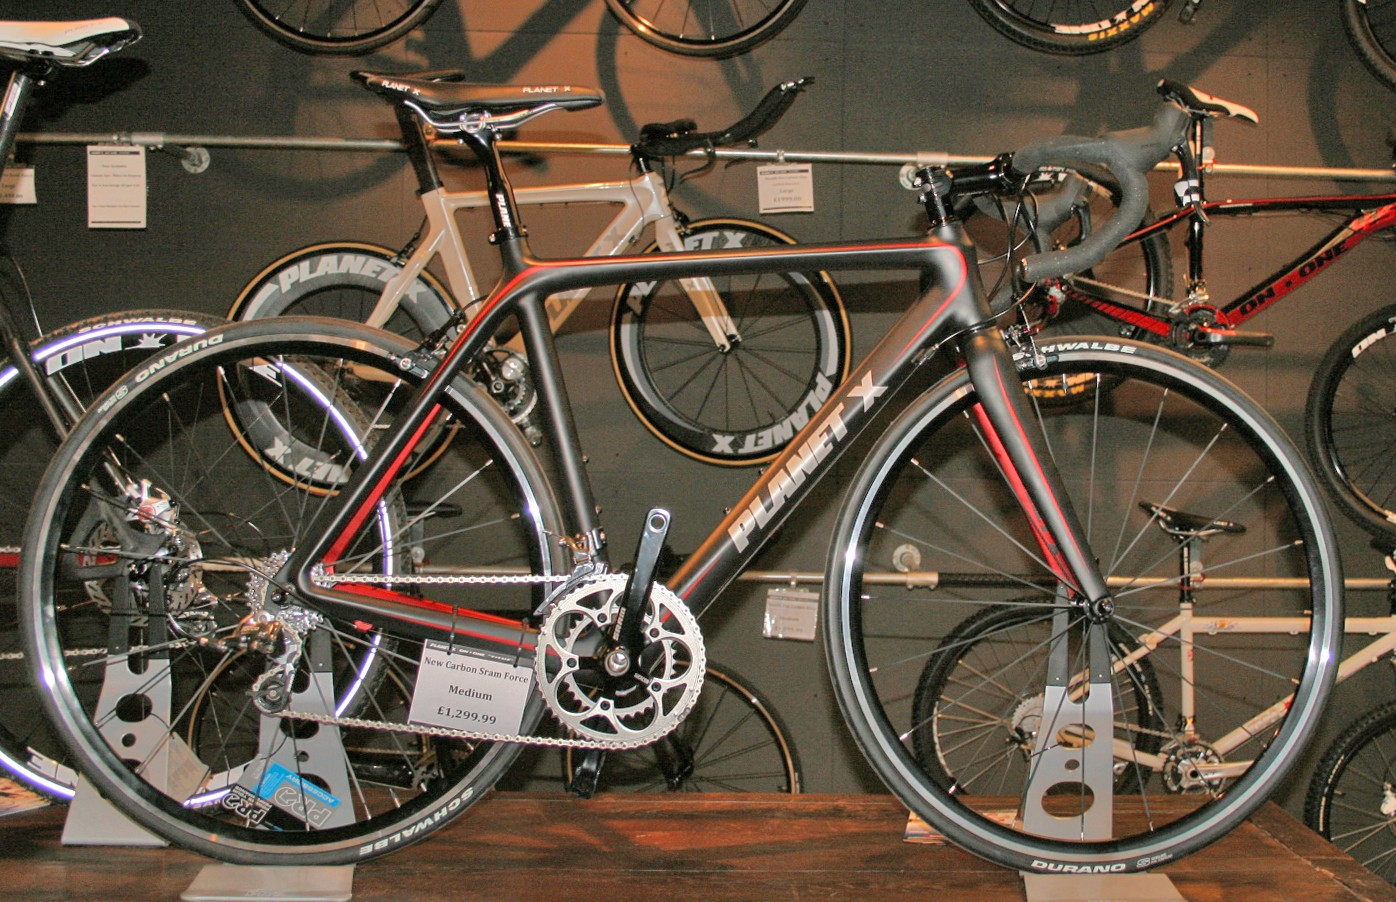 Planet X Carbon with SRAM Force, £1,299